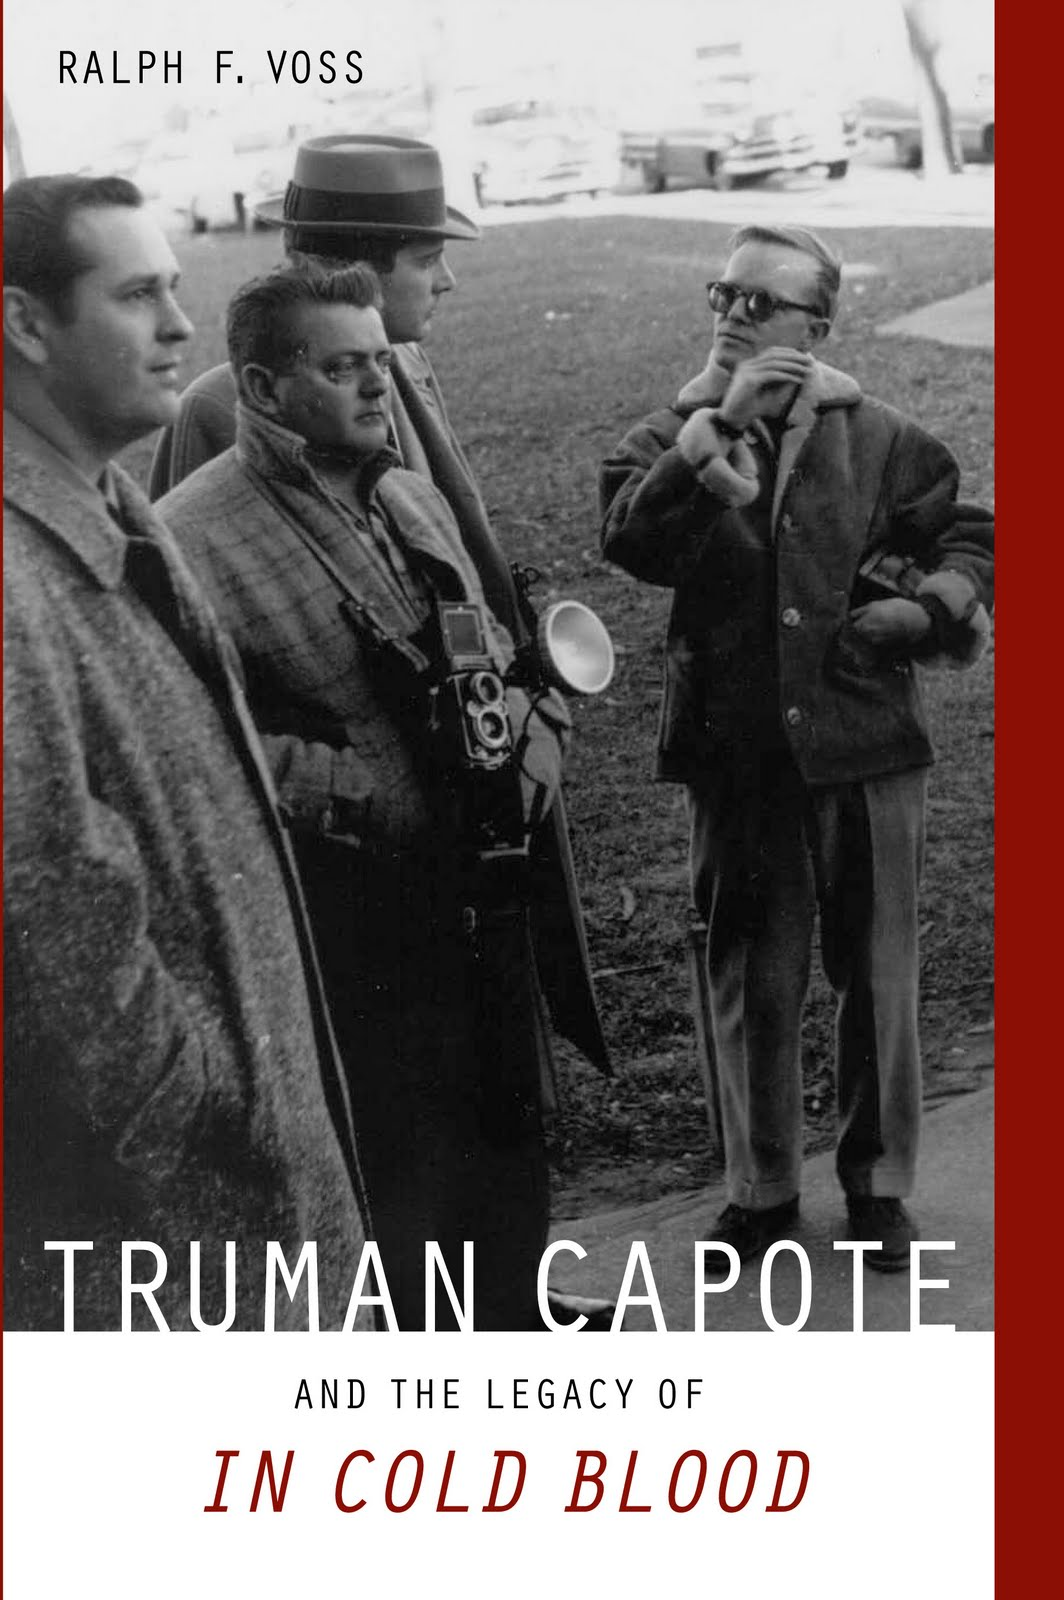 truman capote in cold blood The nonfiction novel in cold blood made truman capote's career but may have ruined his life.